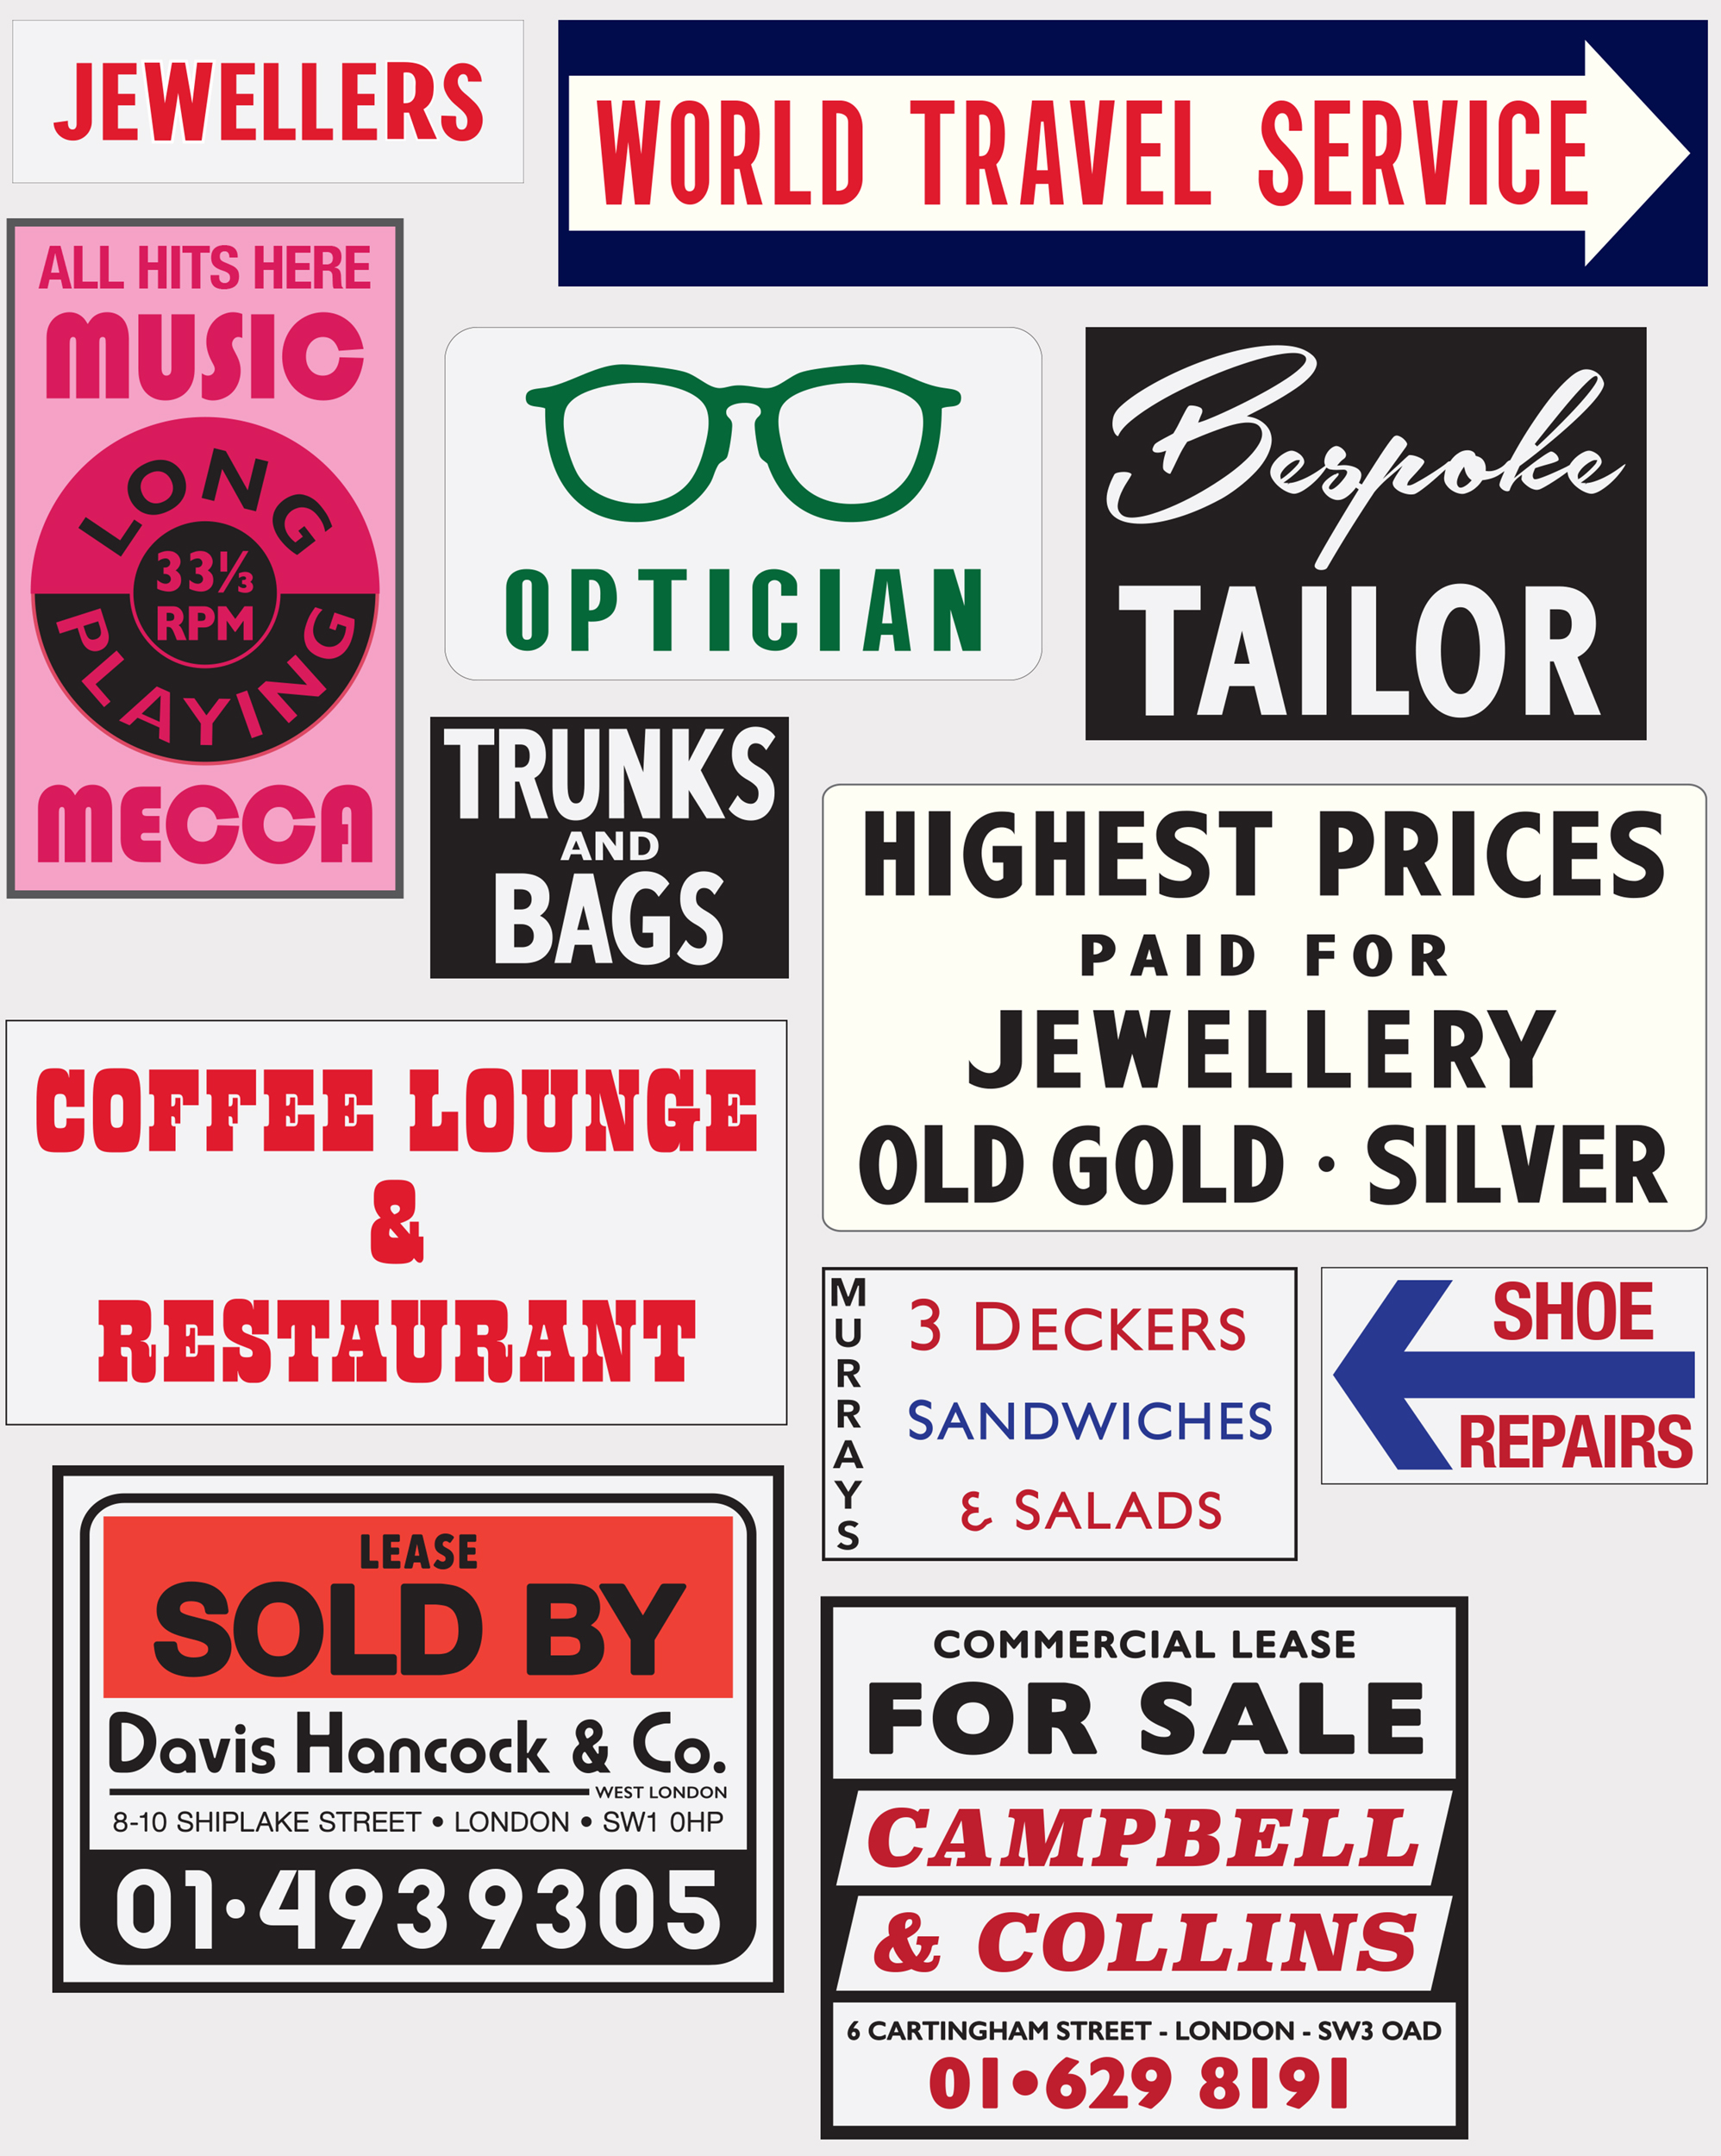 Designs for street signage dressing fabricated using print, vinyl and light boxes.